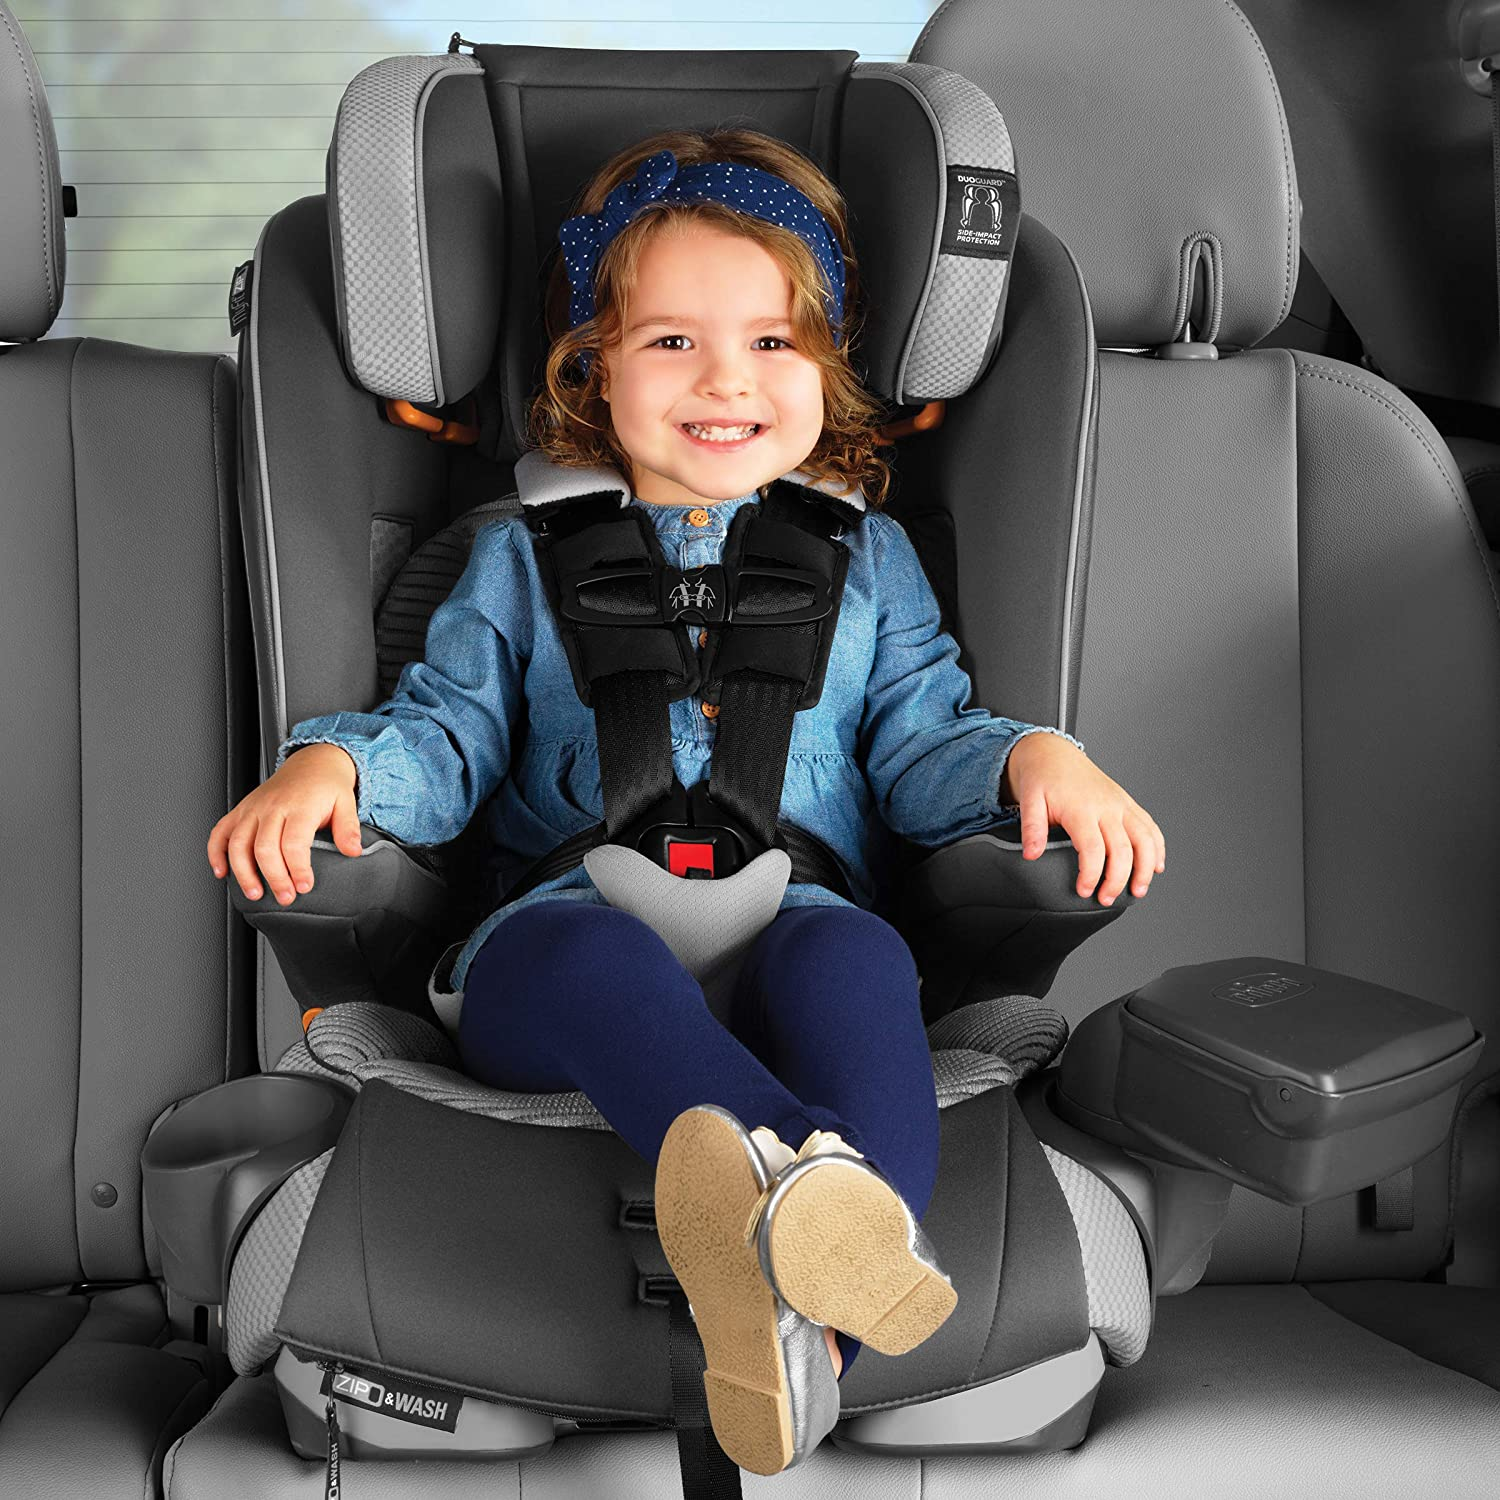 Chicco MyFit Zip Air 2-in-1 Harness Booster Car Seat for Toddlers and Big Kids, 5-Point Harness, Belt-Positioning Booster, Zip-and-Wash Fabrics, 3D AirMesh for Breathability, Q Collection